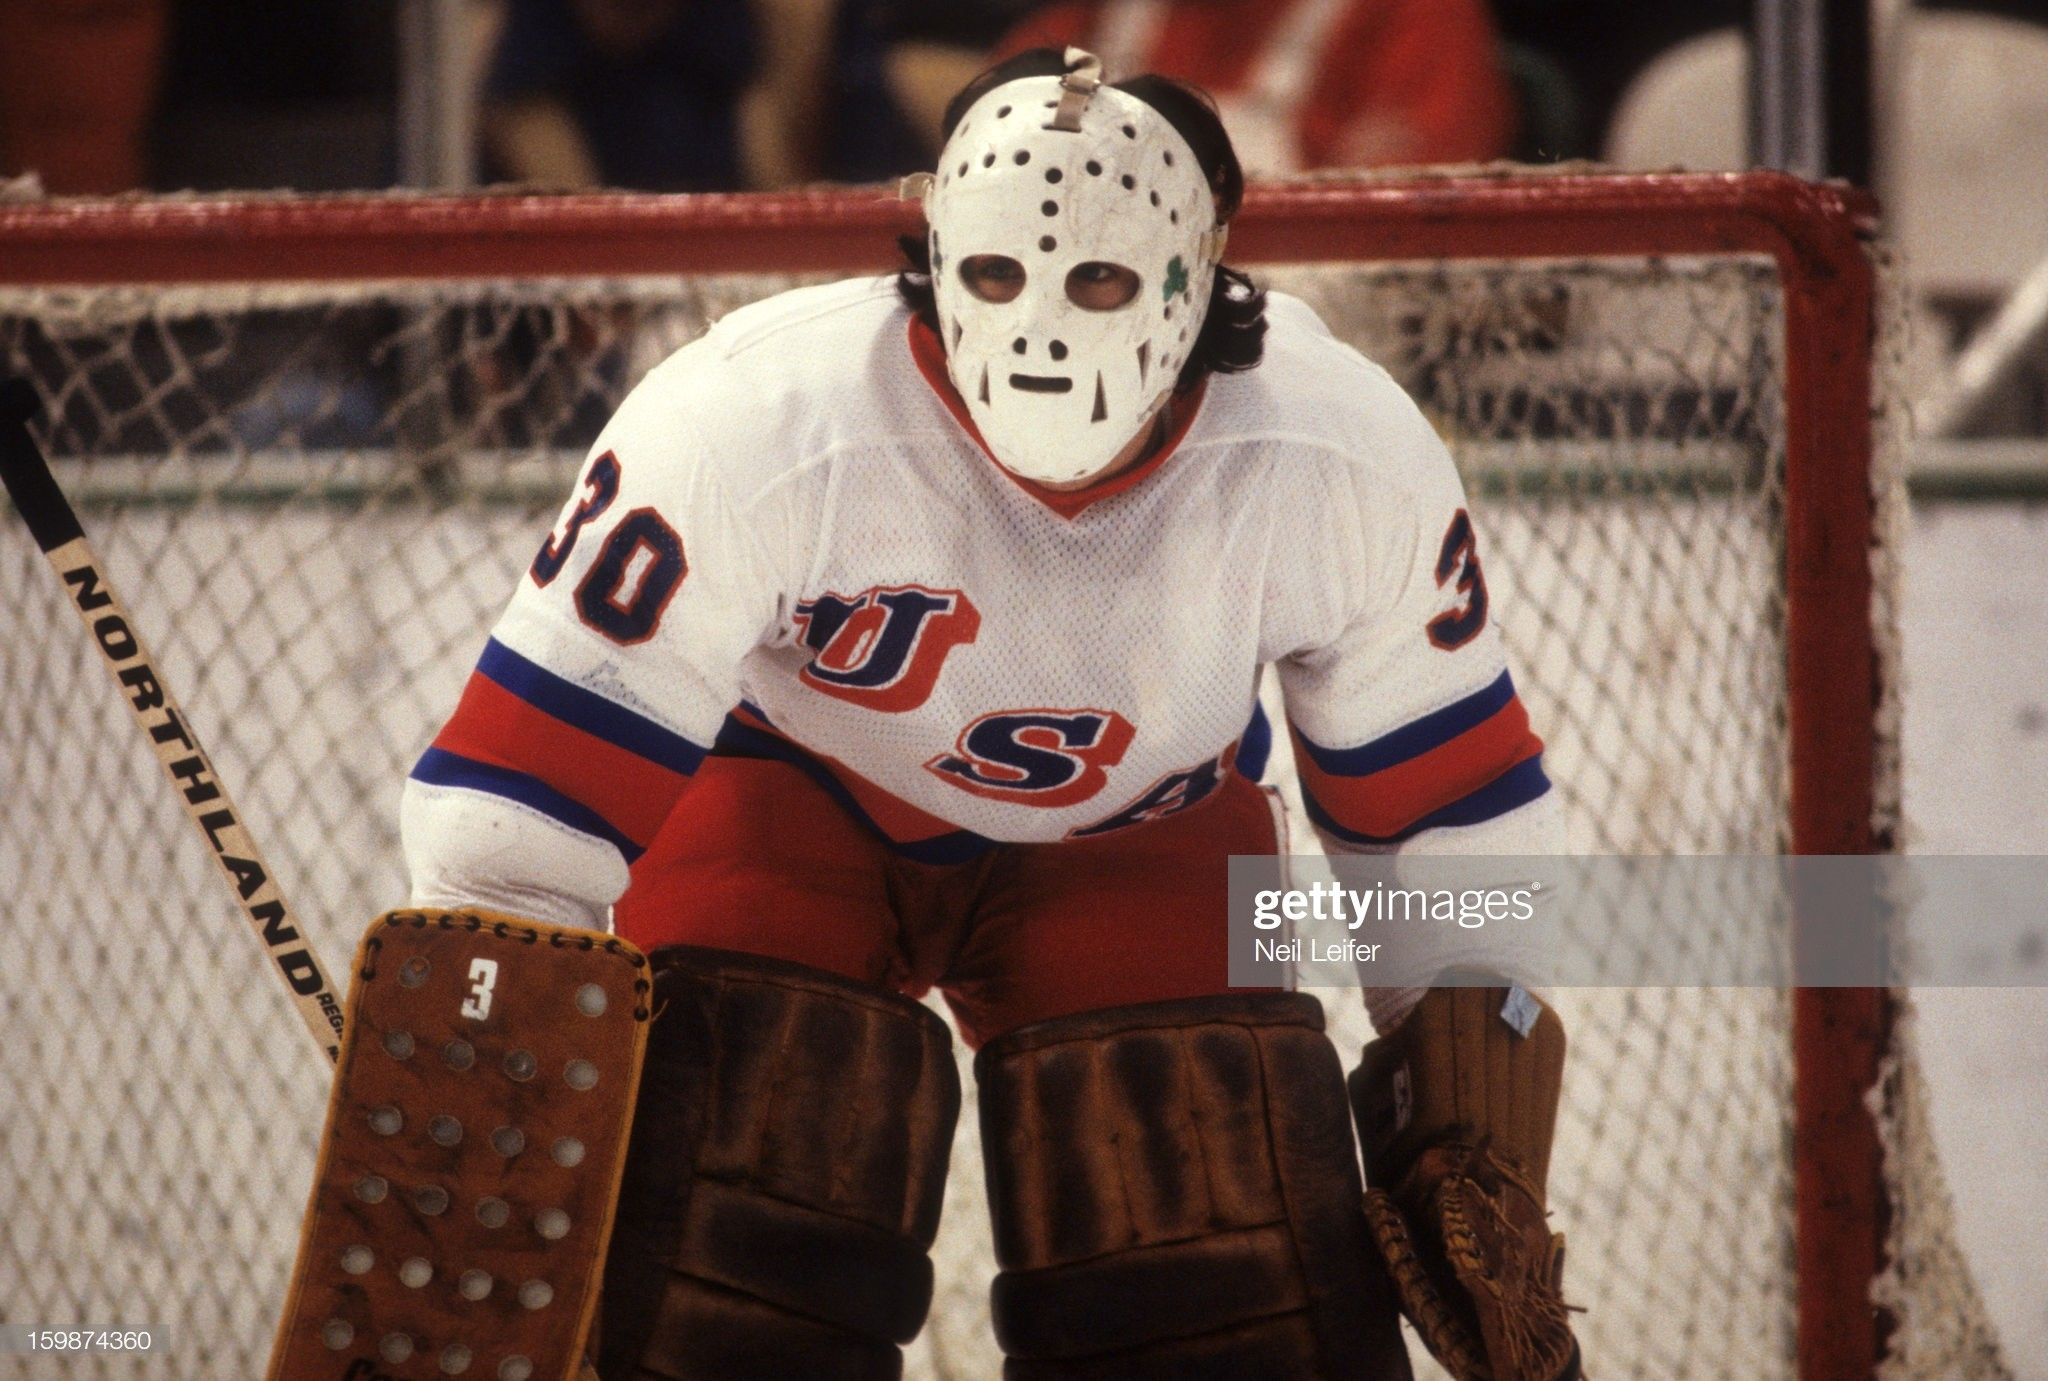 Pin by Big Daddy on Team America Goalies Goalie mask